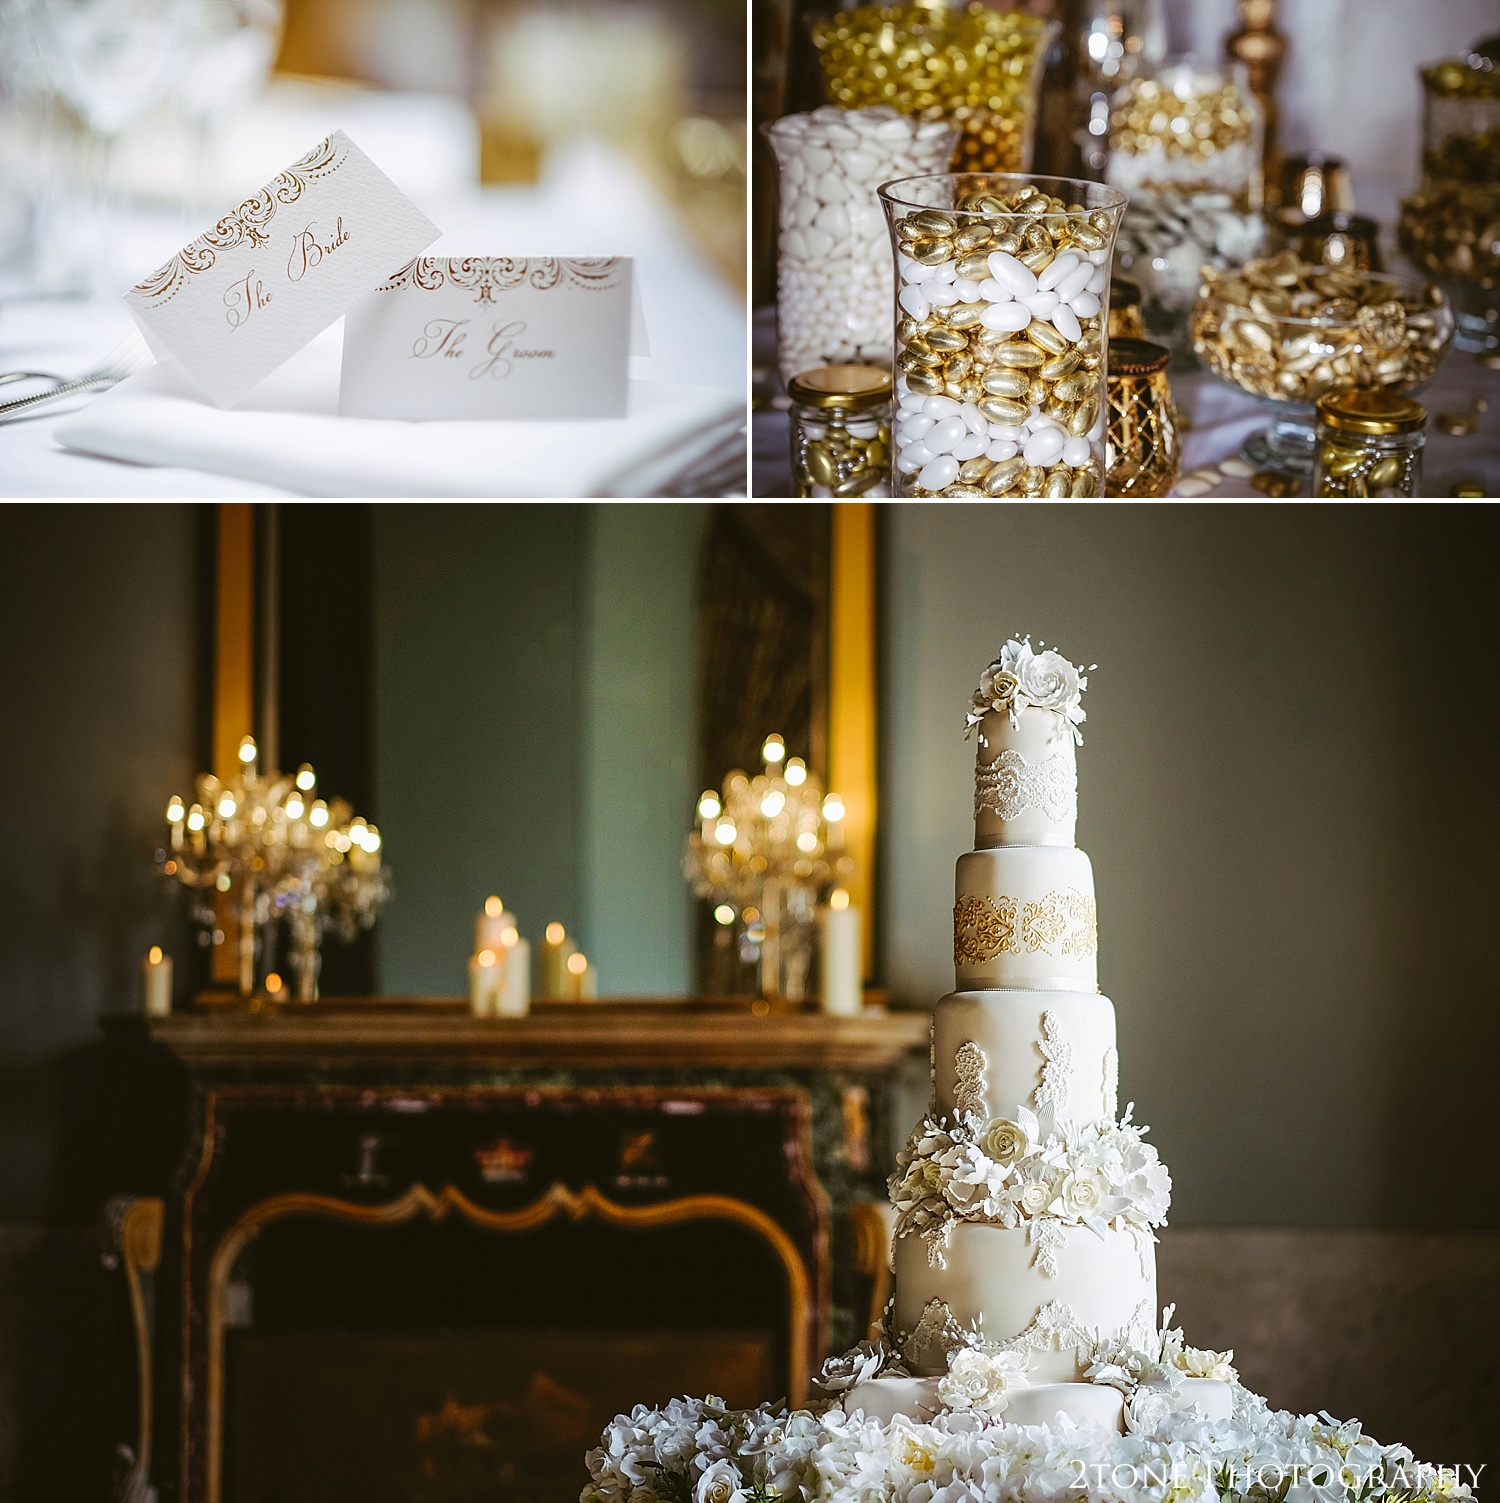 Amazing wedding cake at Wynyard Hall.  Wynyard Hall wedding photography by www.2tonephotography.co.uk